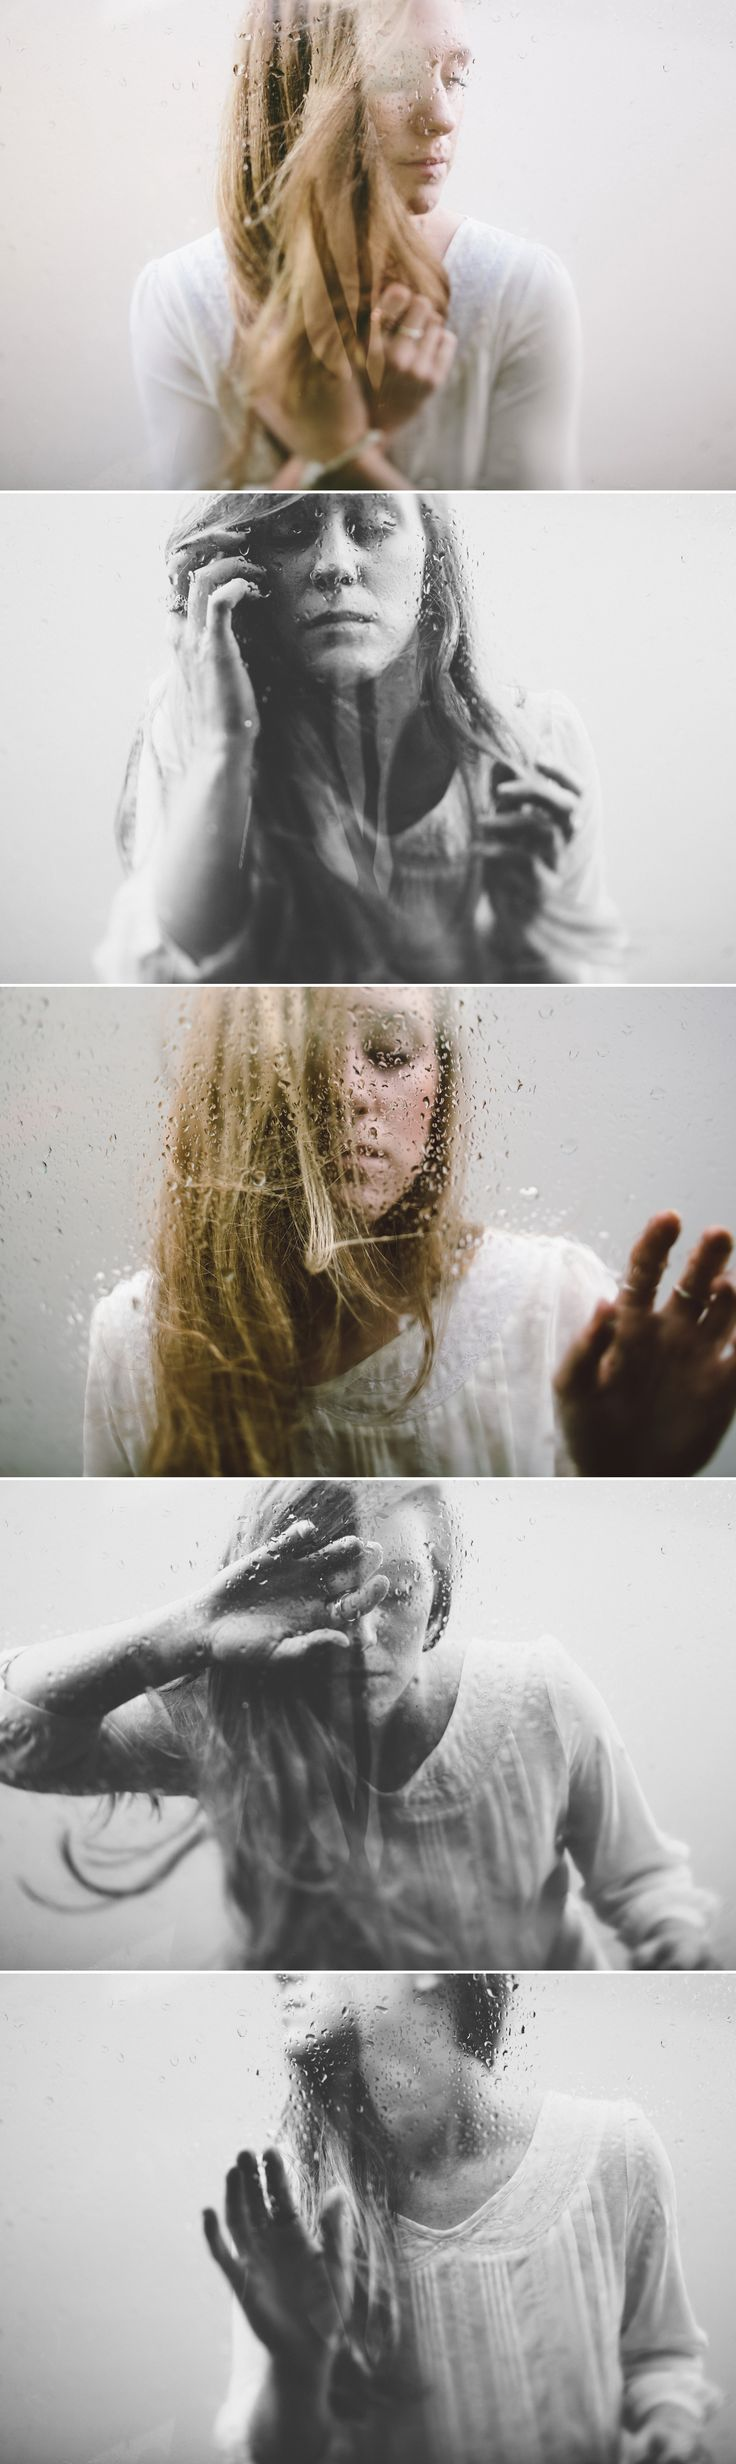 creative self portrait photography - Nicole Mason Photography - http://www.nicolemason.co